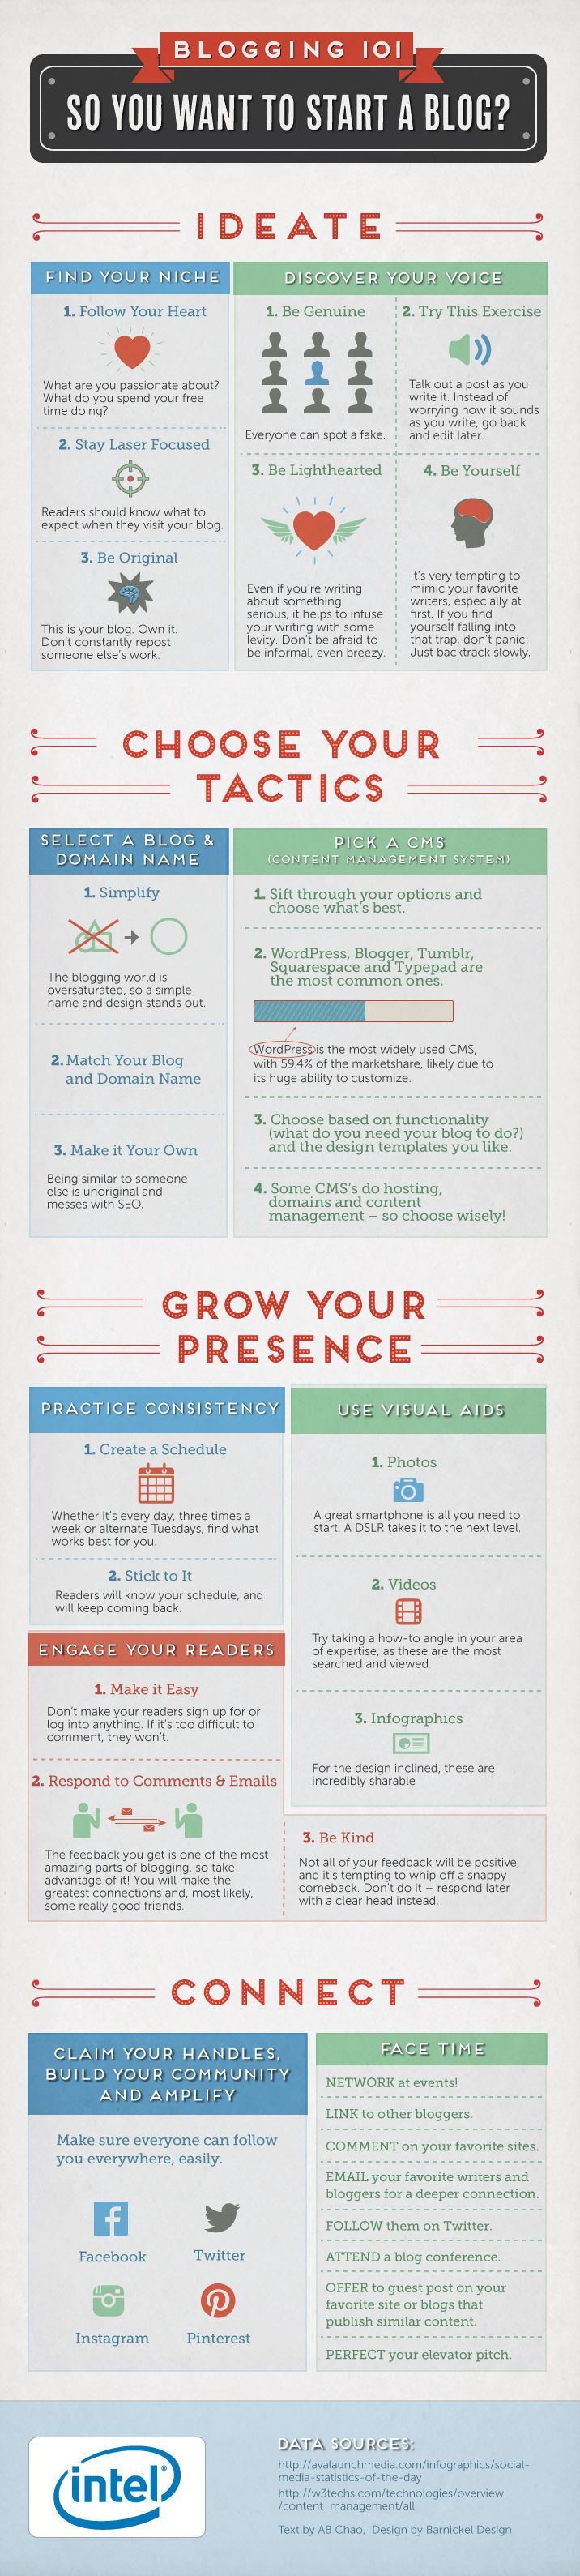 Blogging 101: So You Want to Start a Blog? - #SocialMedia #Infographic